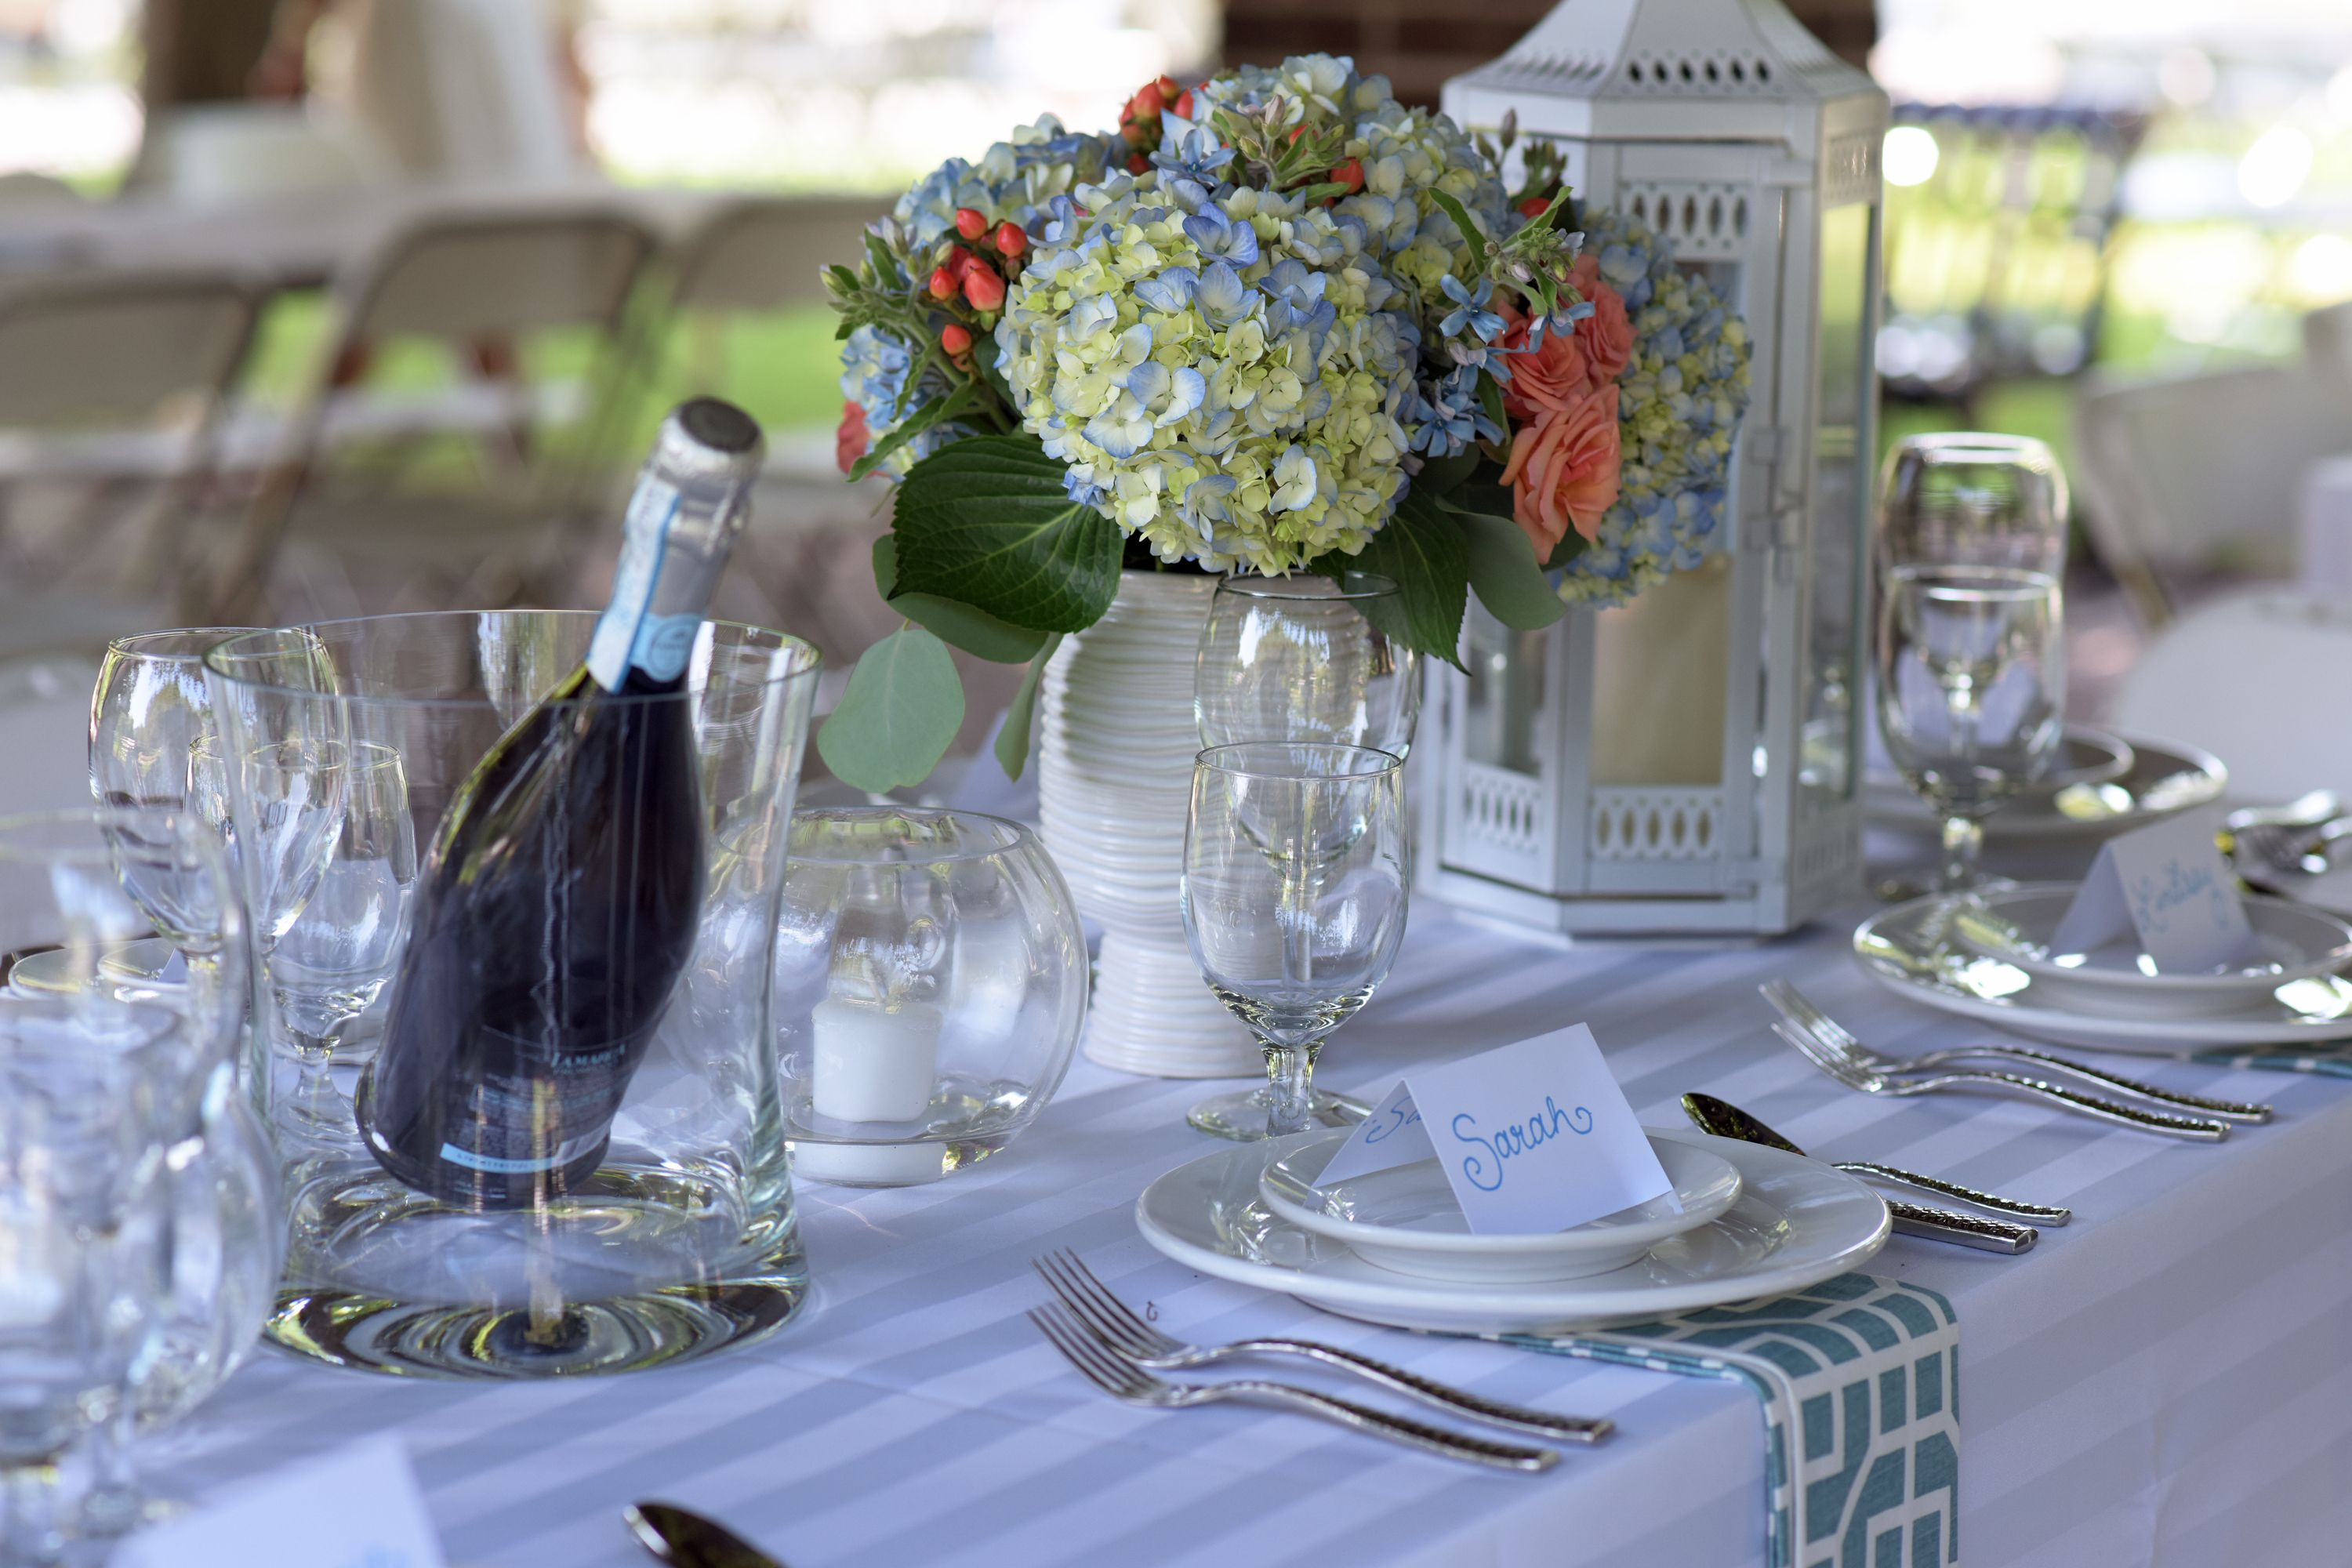 PopUp Dinner Twin Cities 2014u0027s VIP Table- We want ch&agne bottles that match all of our table settings! #handmadeevents #popupweddingsbyhme ... & PopUp Dinner Twin Cities 2014u0027s VIP Table- We want champagne bottles ...